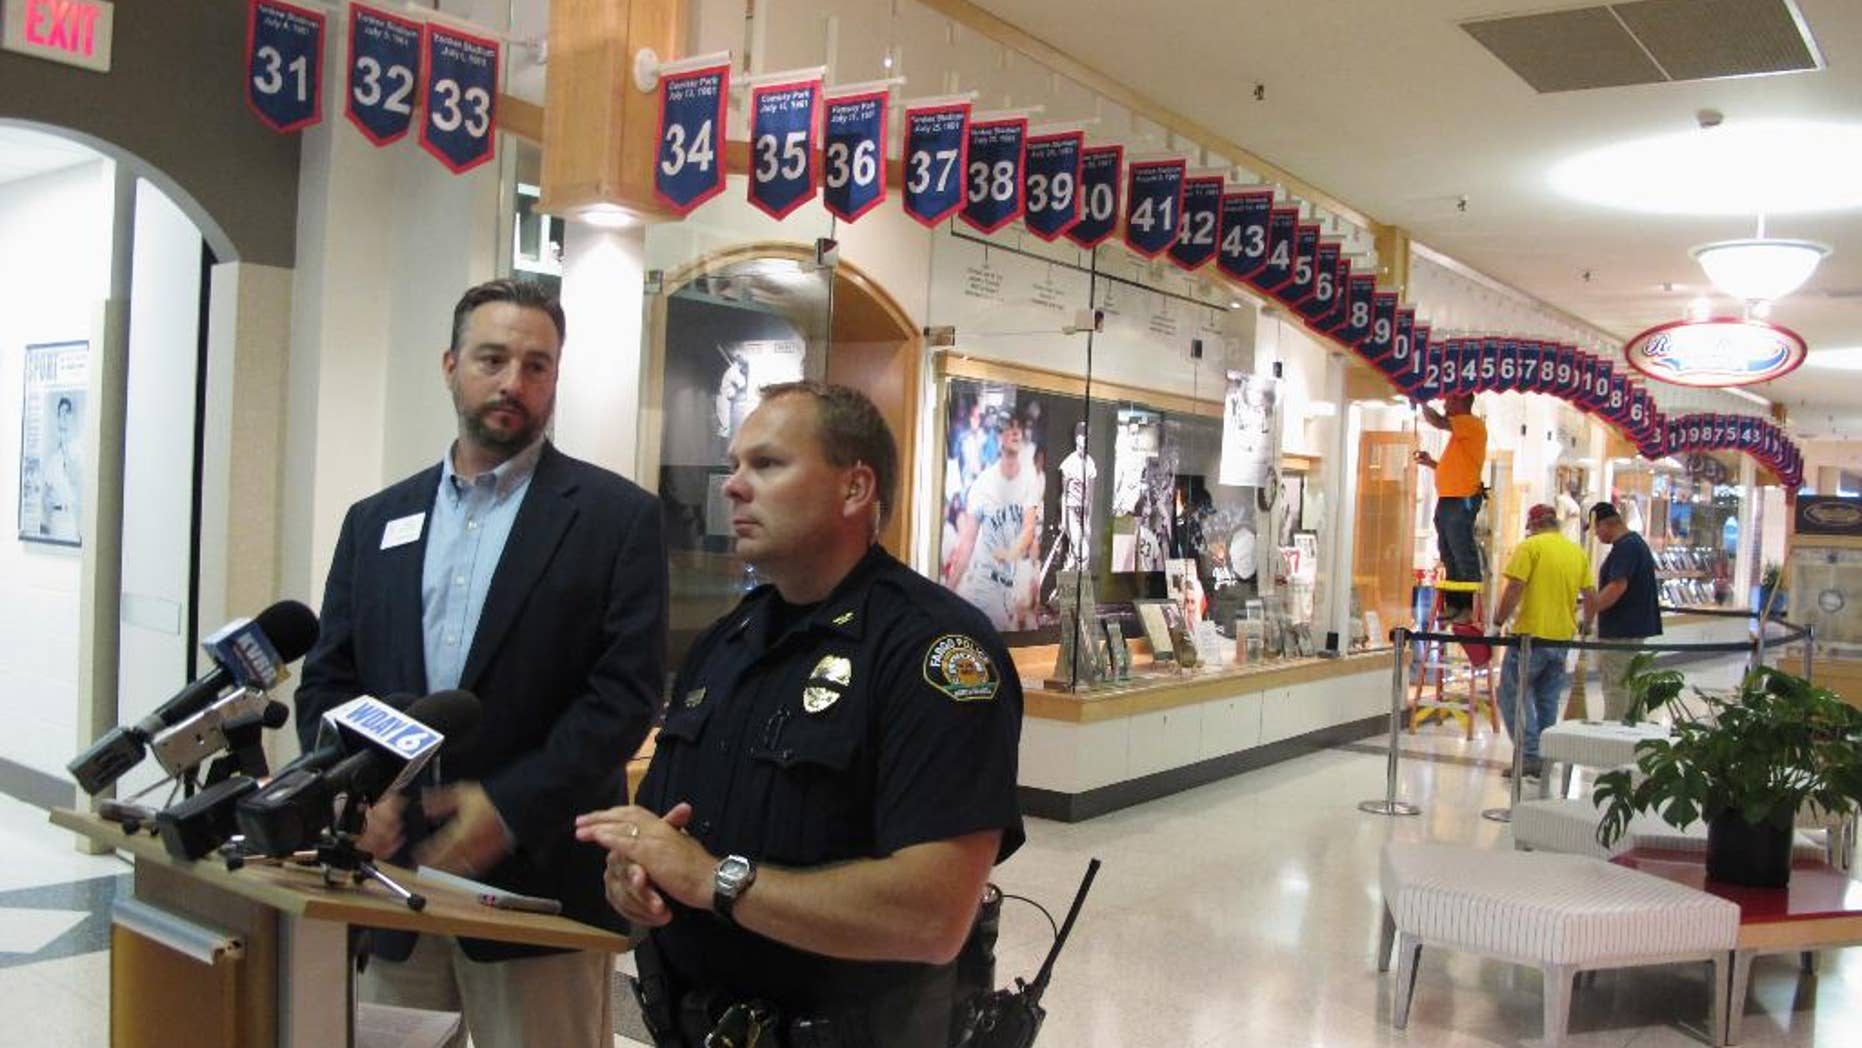 West Acres Mall property manager Chris Heaton, left, and Fargo Deputy Police Chief Joe Anderson talk in front of the Roger Maris Museum in Fargo, N.D., on Tuesday, July 26, 2016, while workers repair a display where an ornate belt was stolen from the mall early Tuesday. Maris, who grew up in Fargo, won the Hickok Belt in 1961 when he hit 61 home runs, a record at the time. The award has gone to the top professional athletes in the country. (AP Photo/Dave Kolpack)